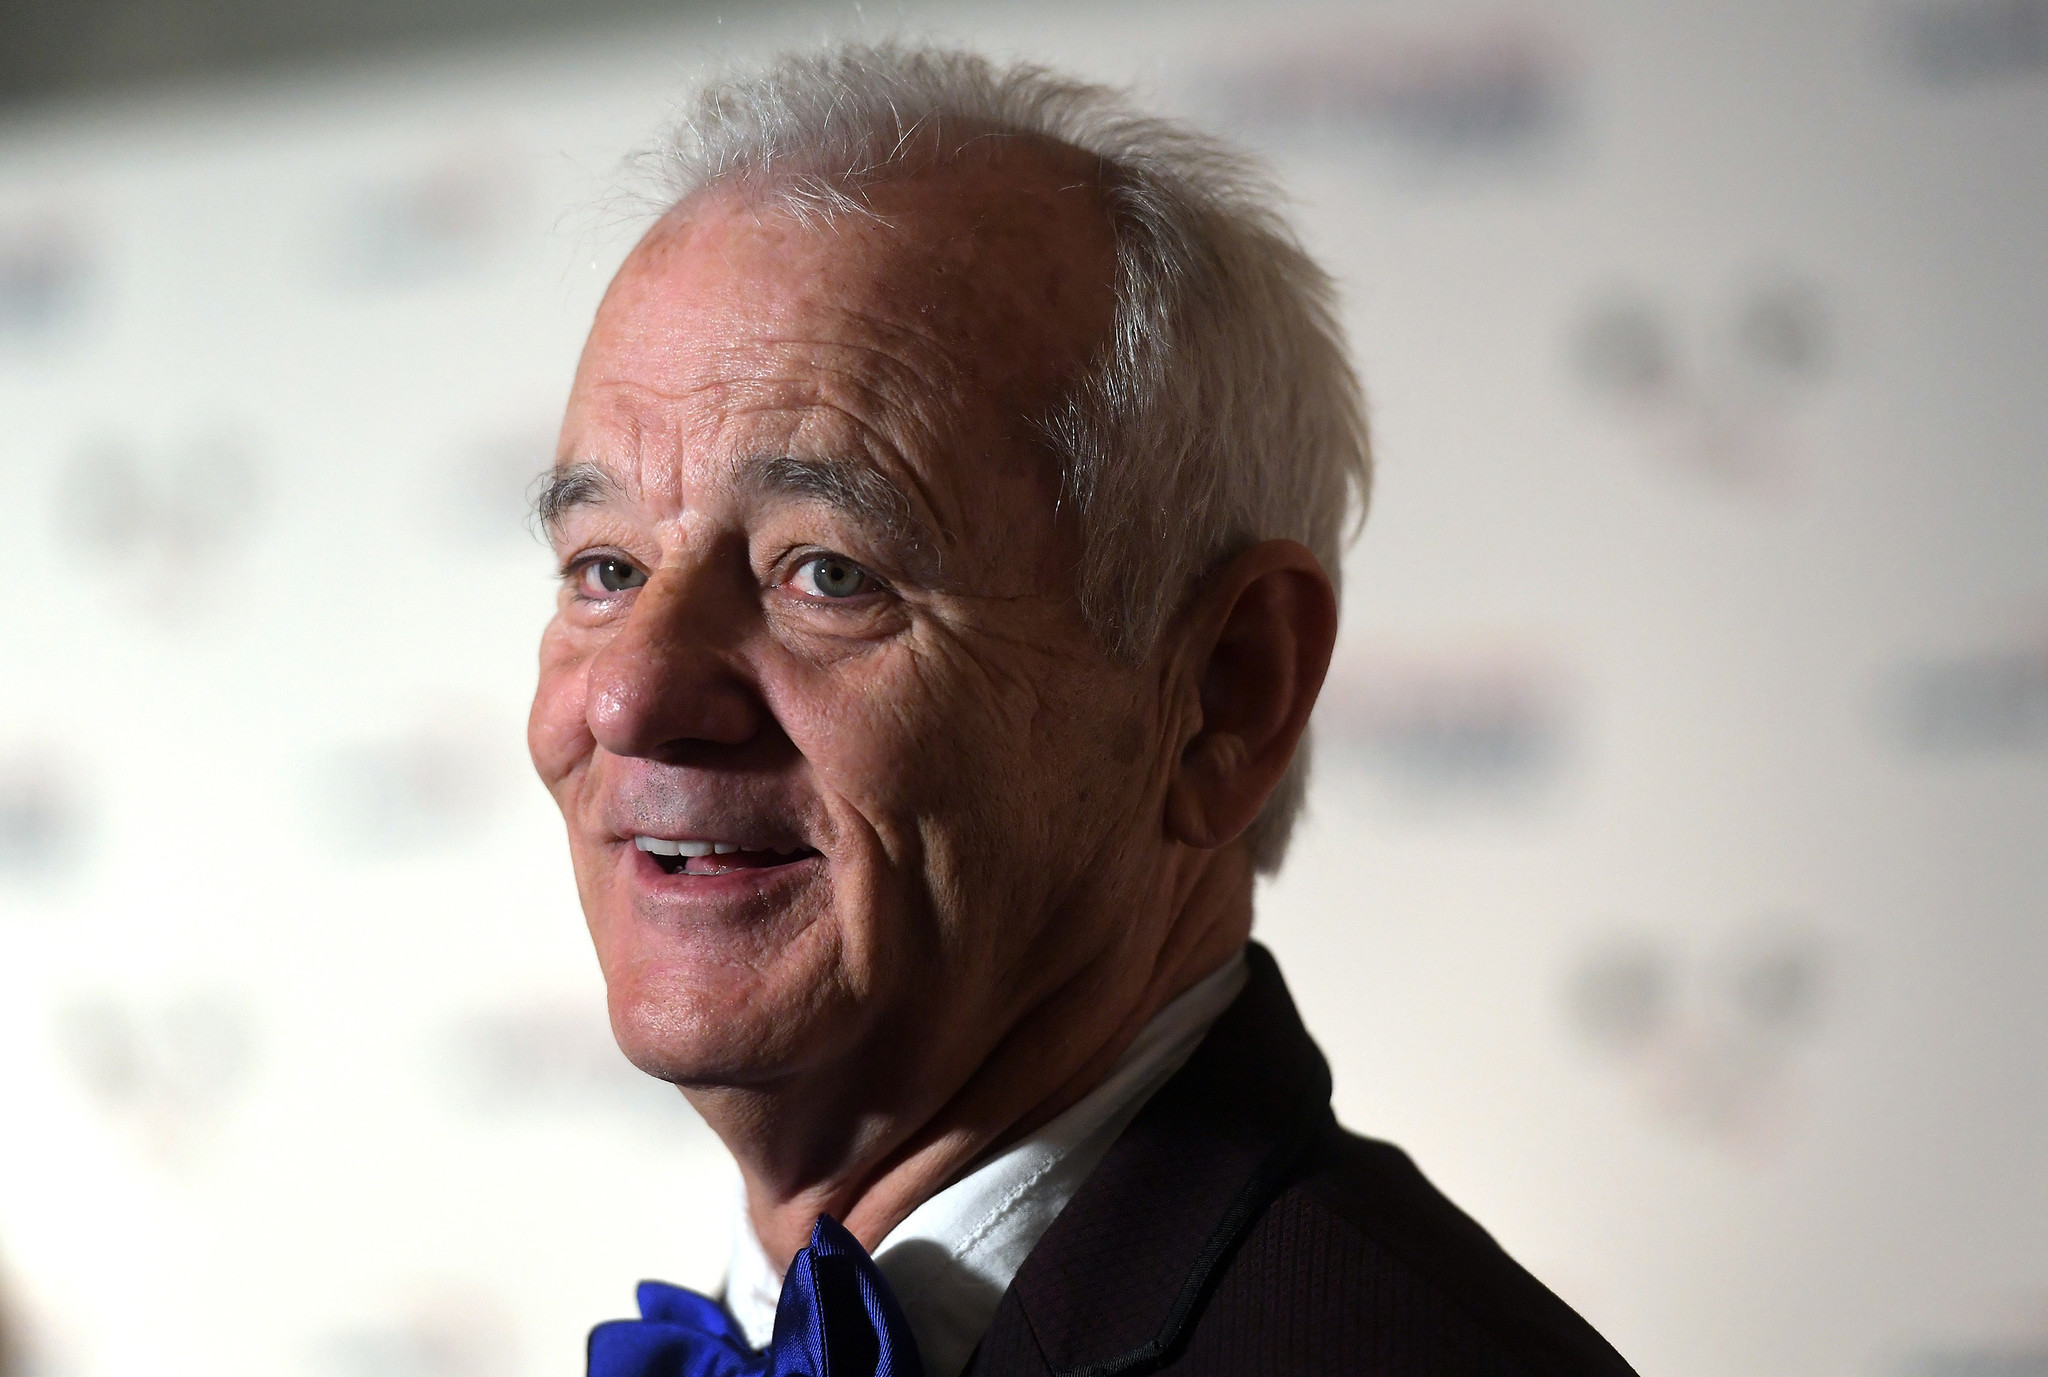 bill murray hd wallpaper - photo #43